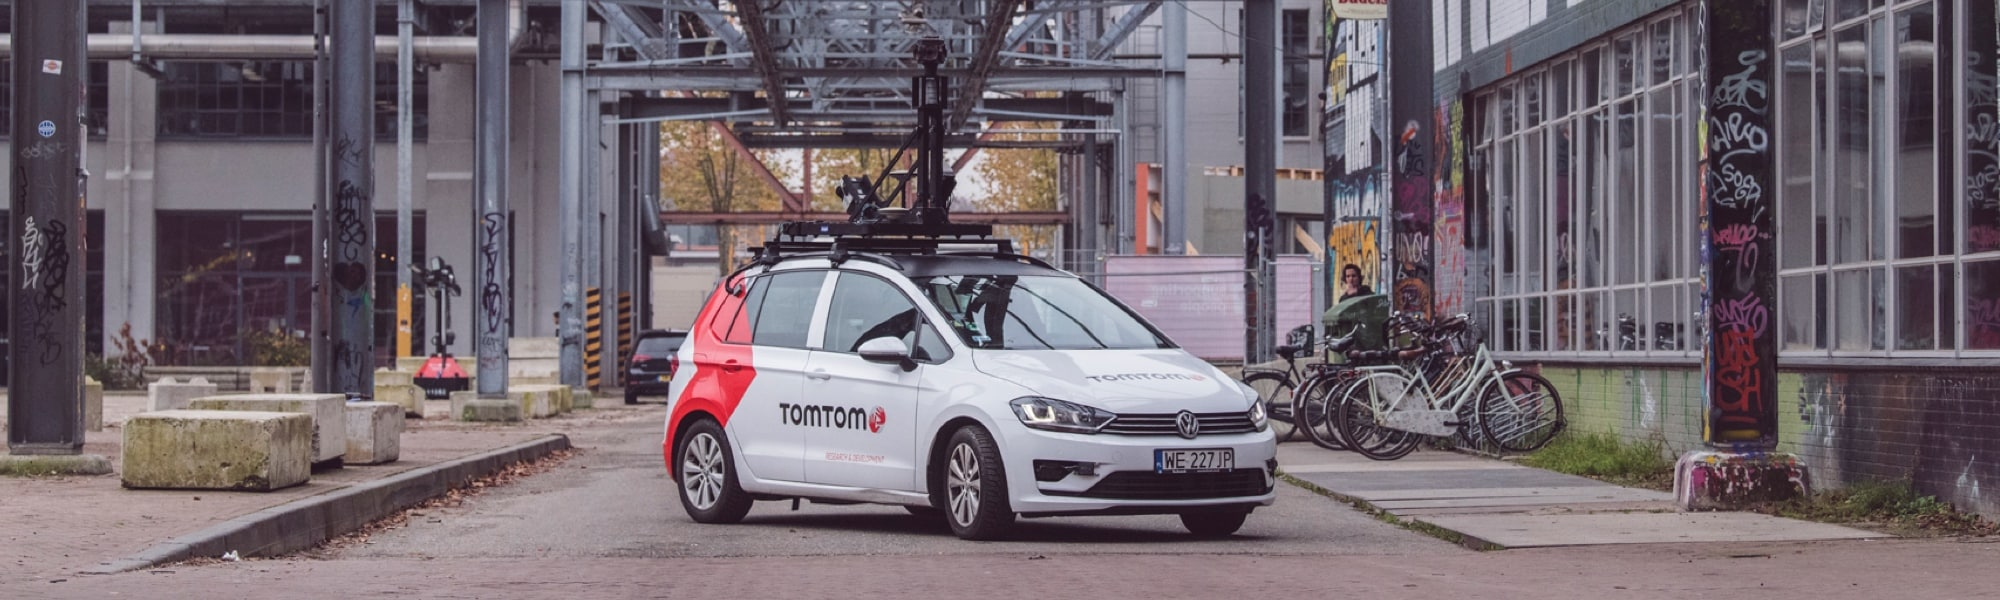 TomTom mobile mapping (MoMa) van